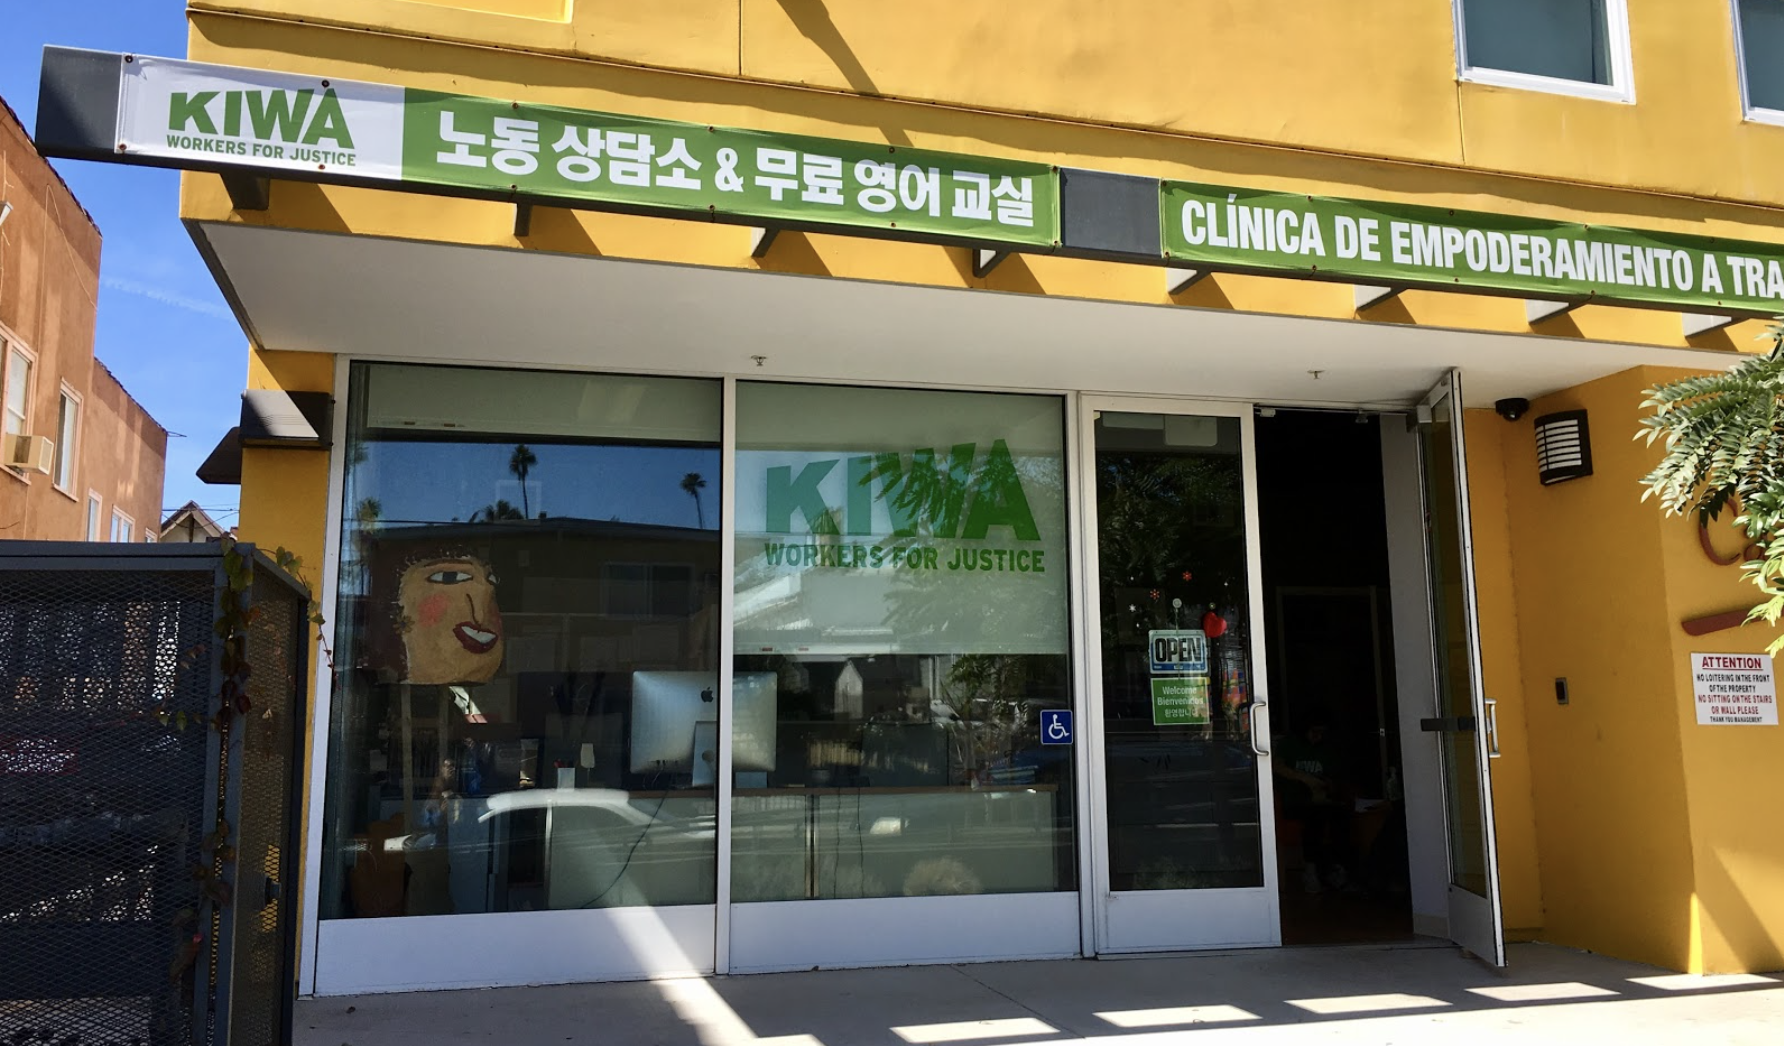 File:KIWA's office in Koreatown on the first floor of an